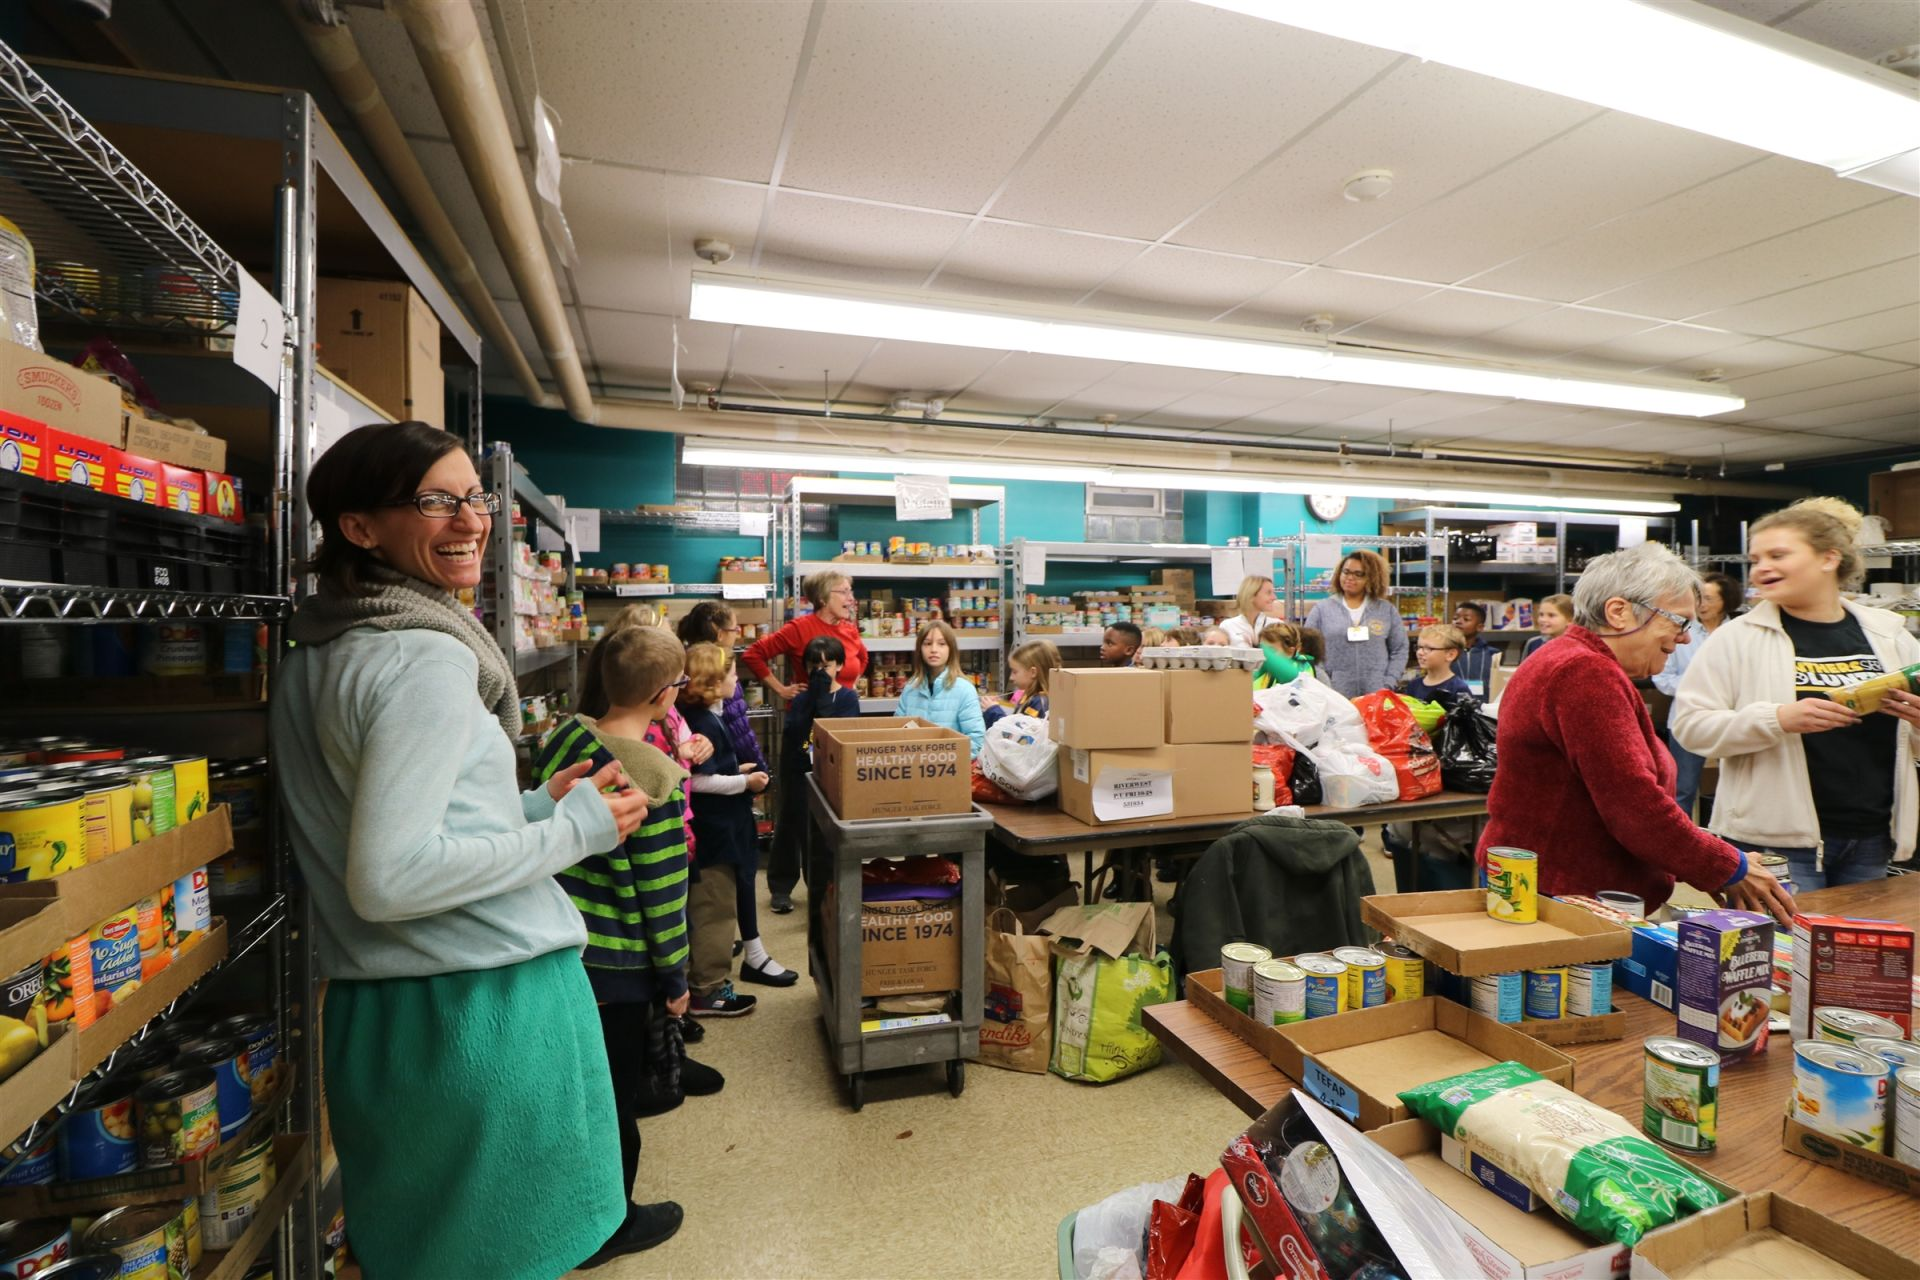 A teacher smiles for a photo during a field trip to the Riverwest Food Pantry.